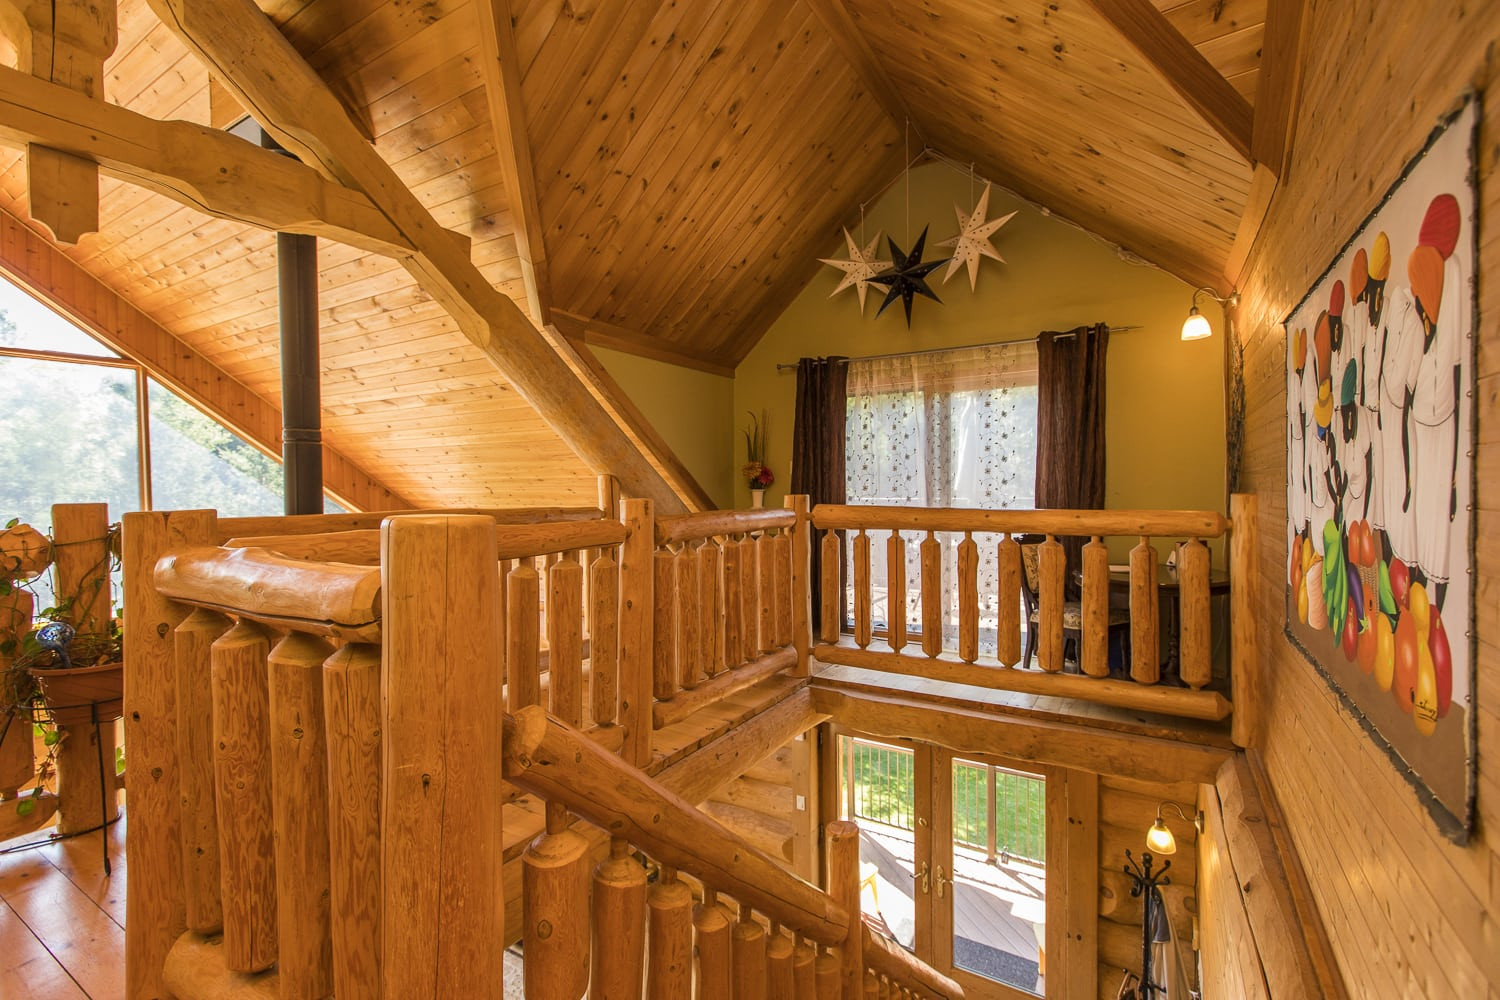 hardwood flooring kanata of 107 corkery woods drive west ottawa real estate with regard to floor heating are some of the features of this home solid scandinavian scribed logpine and stone exterior metal roof quality wood aluminium clad